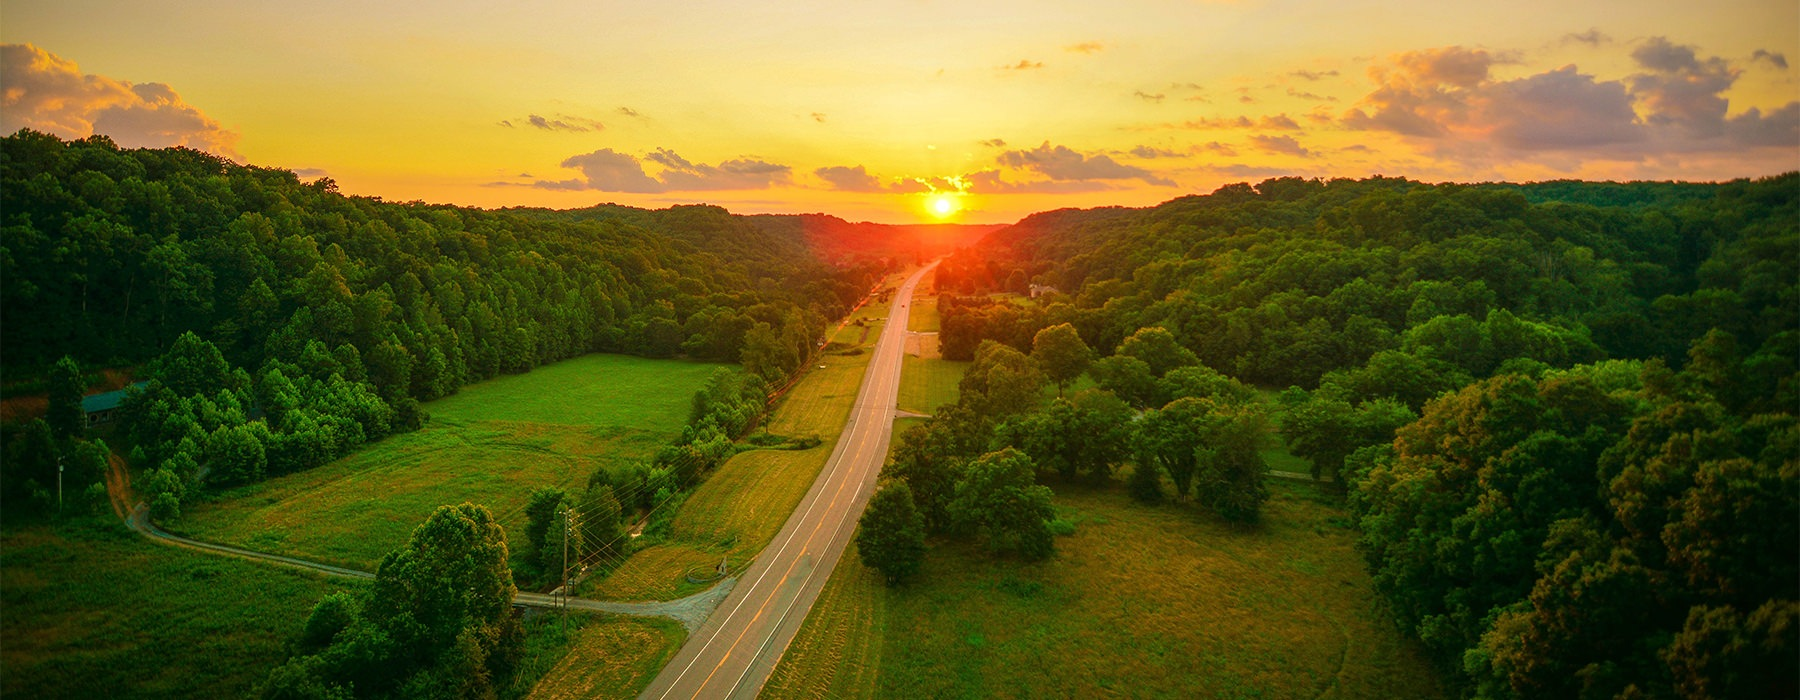 Beautiful sunset at the end of a long country road